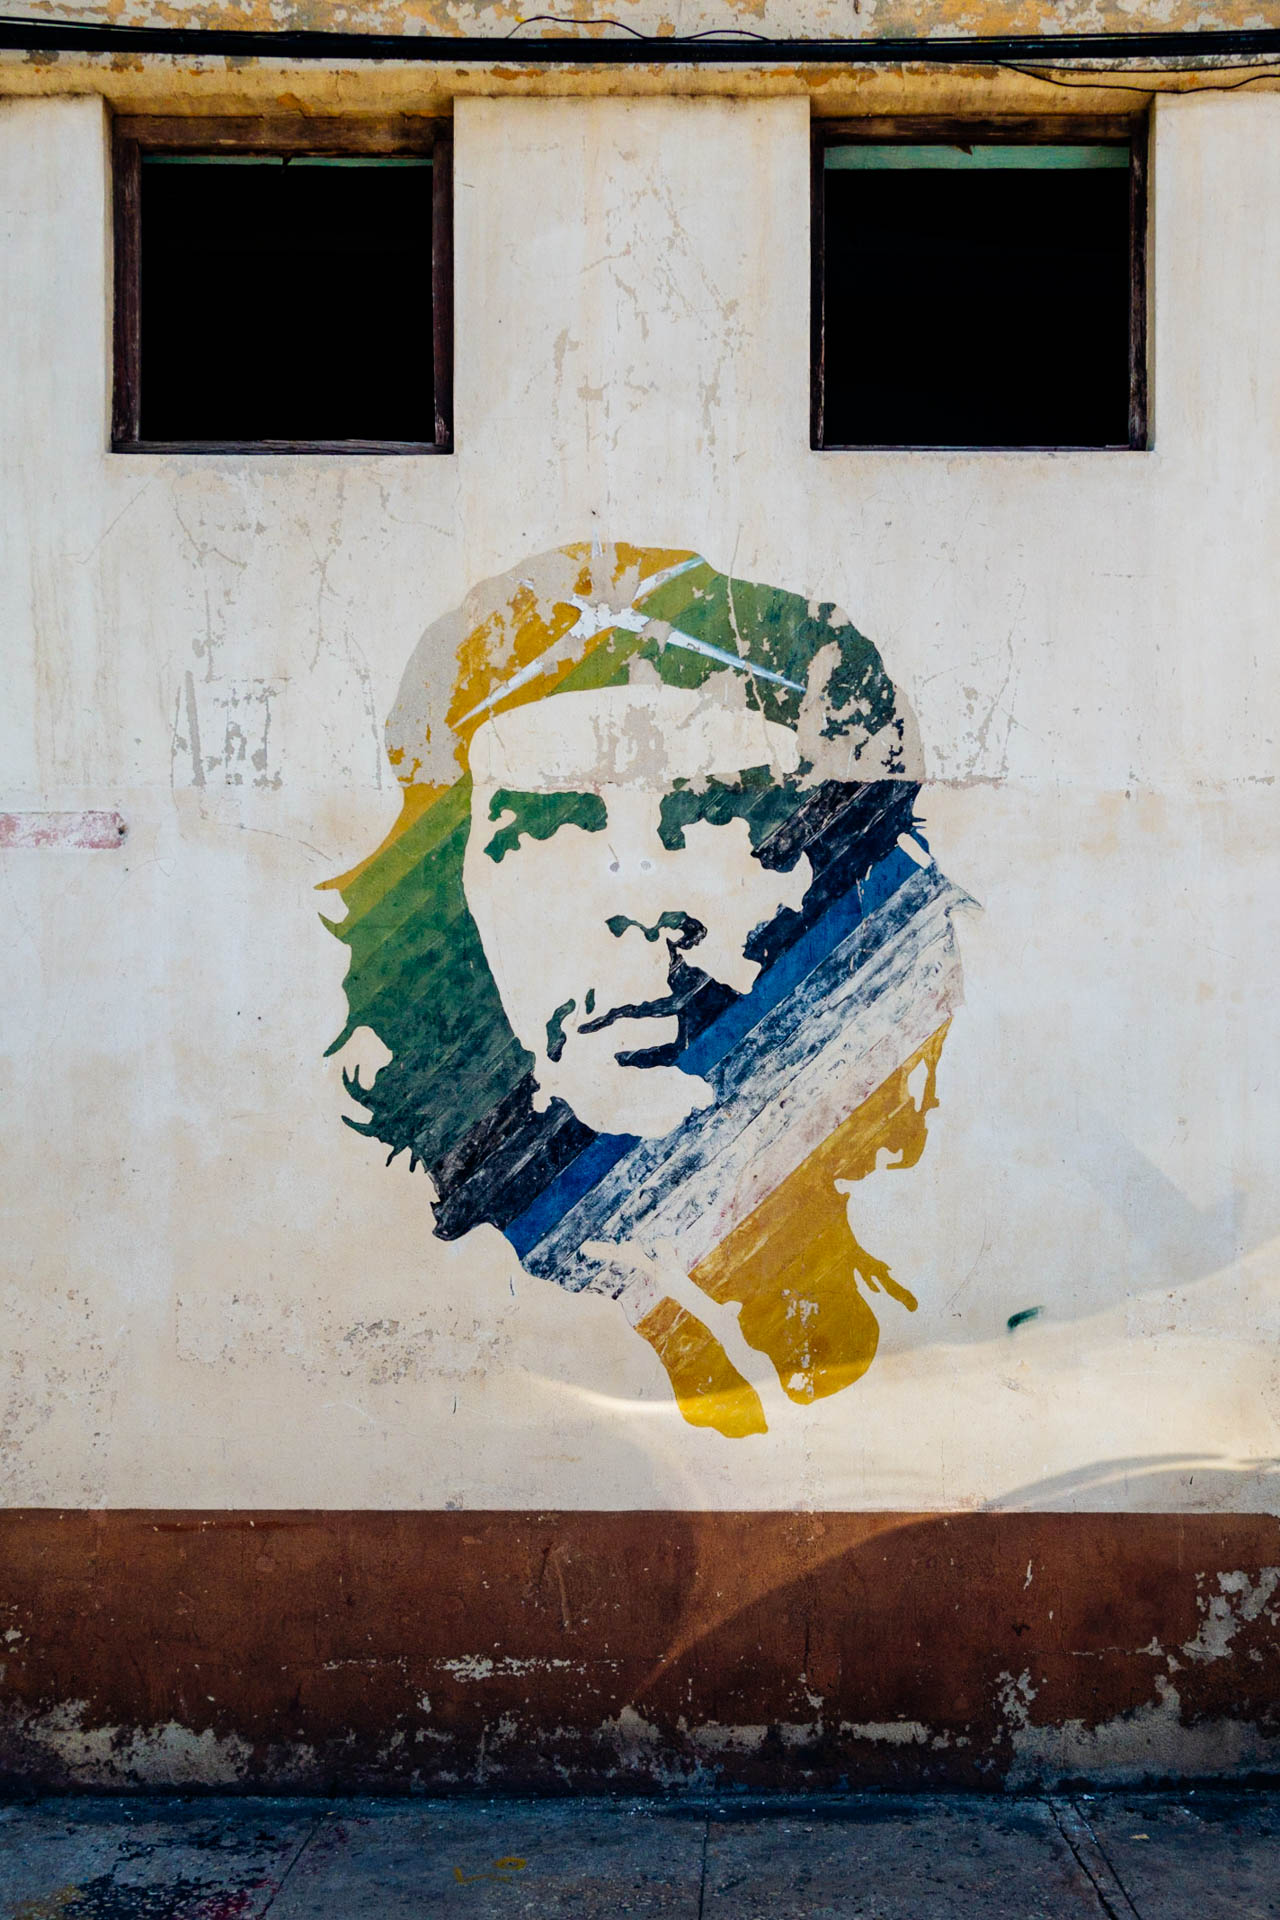 The famous Ché Guevara on the harbour railway station wall in havana.